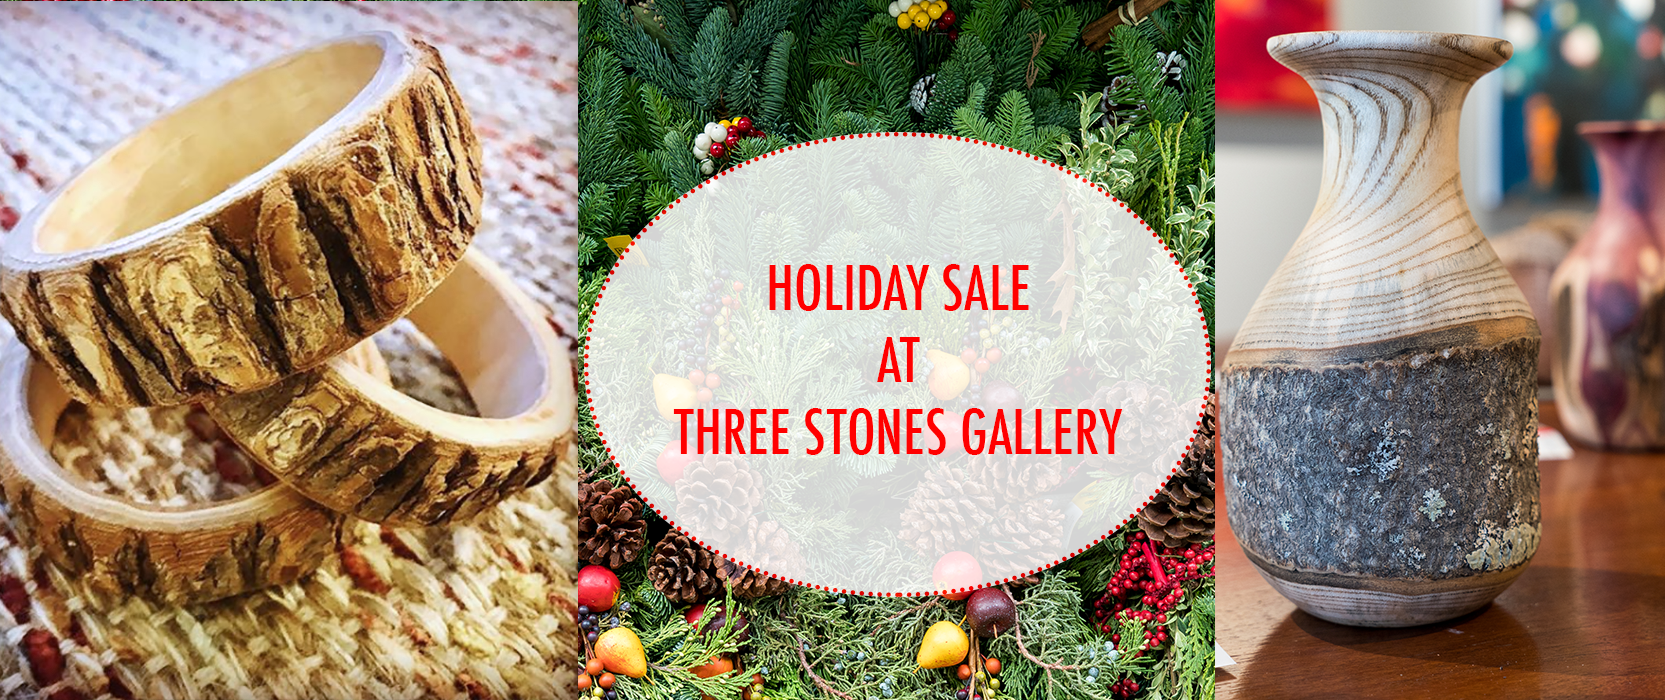 holiday art gallery sale at three stones gallery in west concord ma